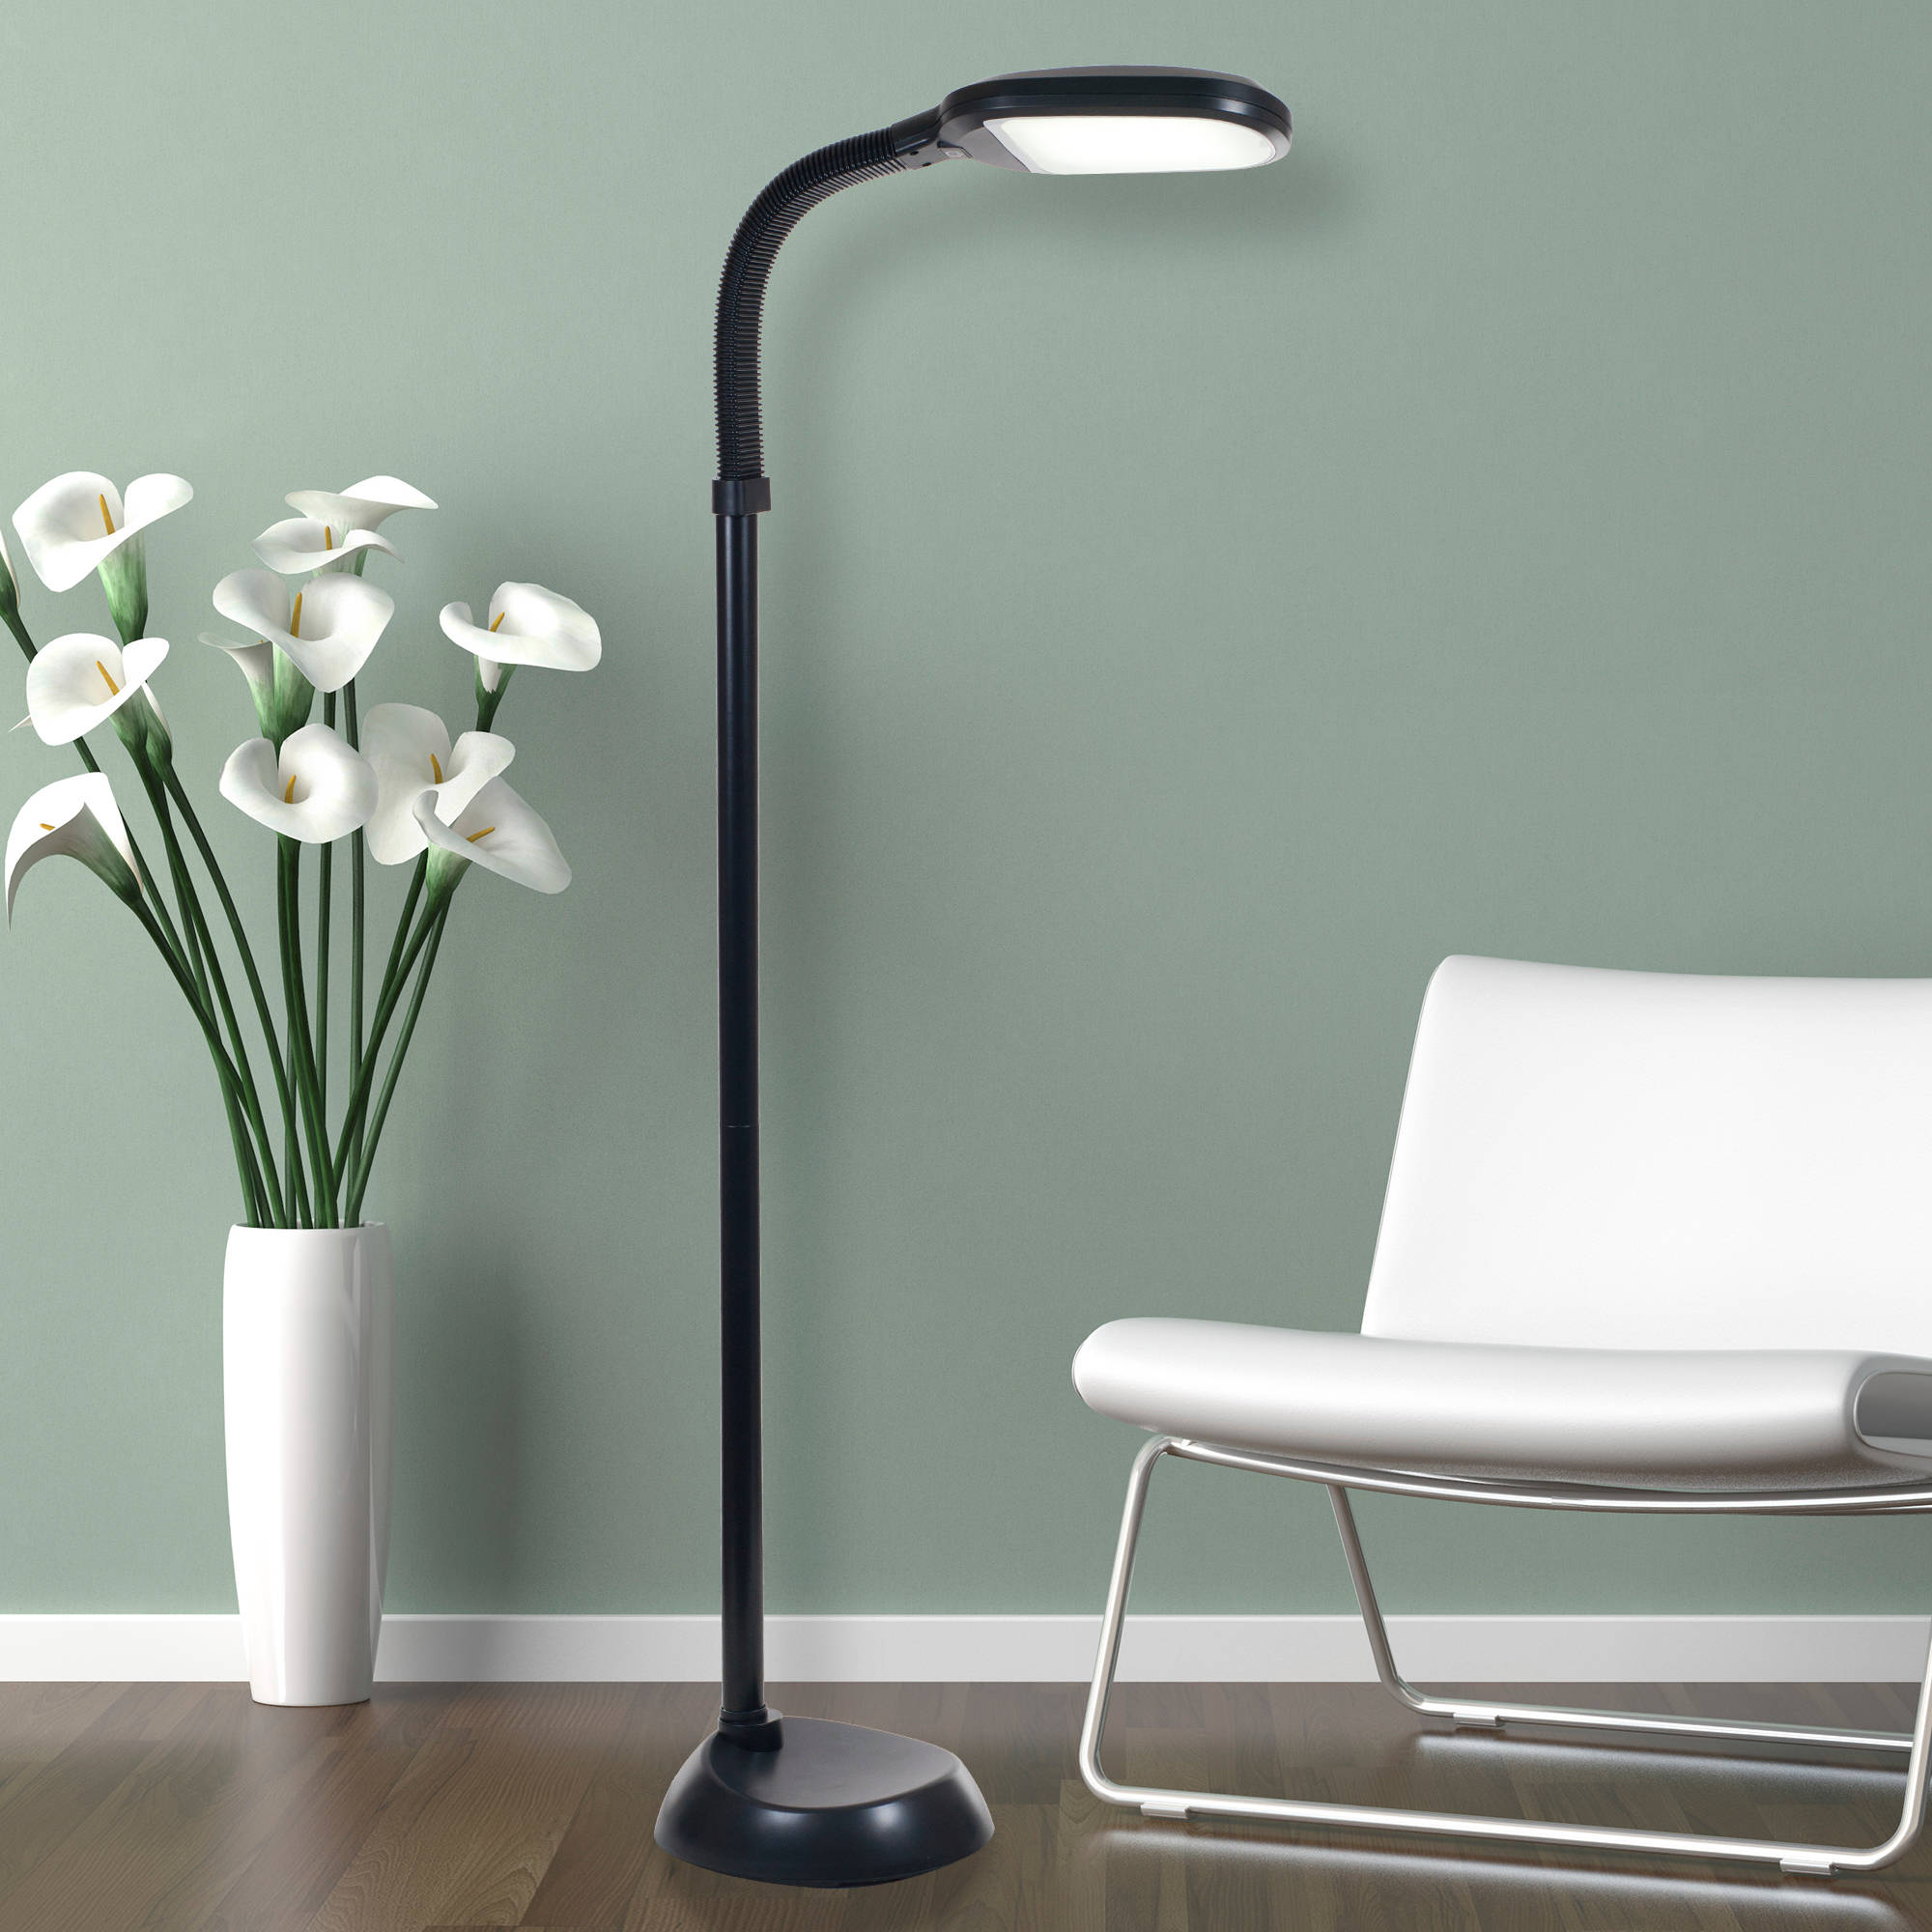 Fine Mainstays Shelf Floor Lamp Black Interior Design Ideas Grebswwsoteloinfo